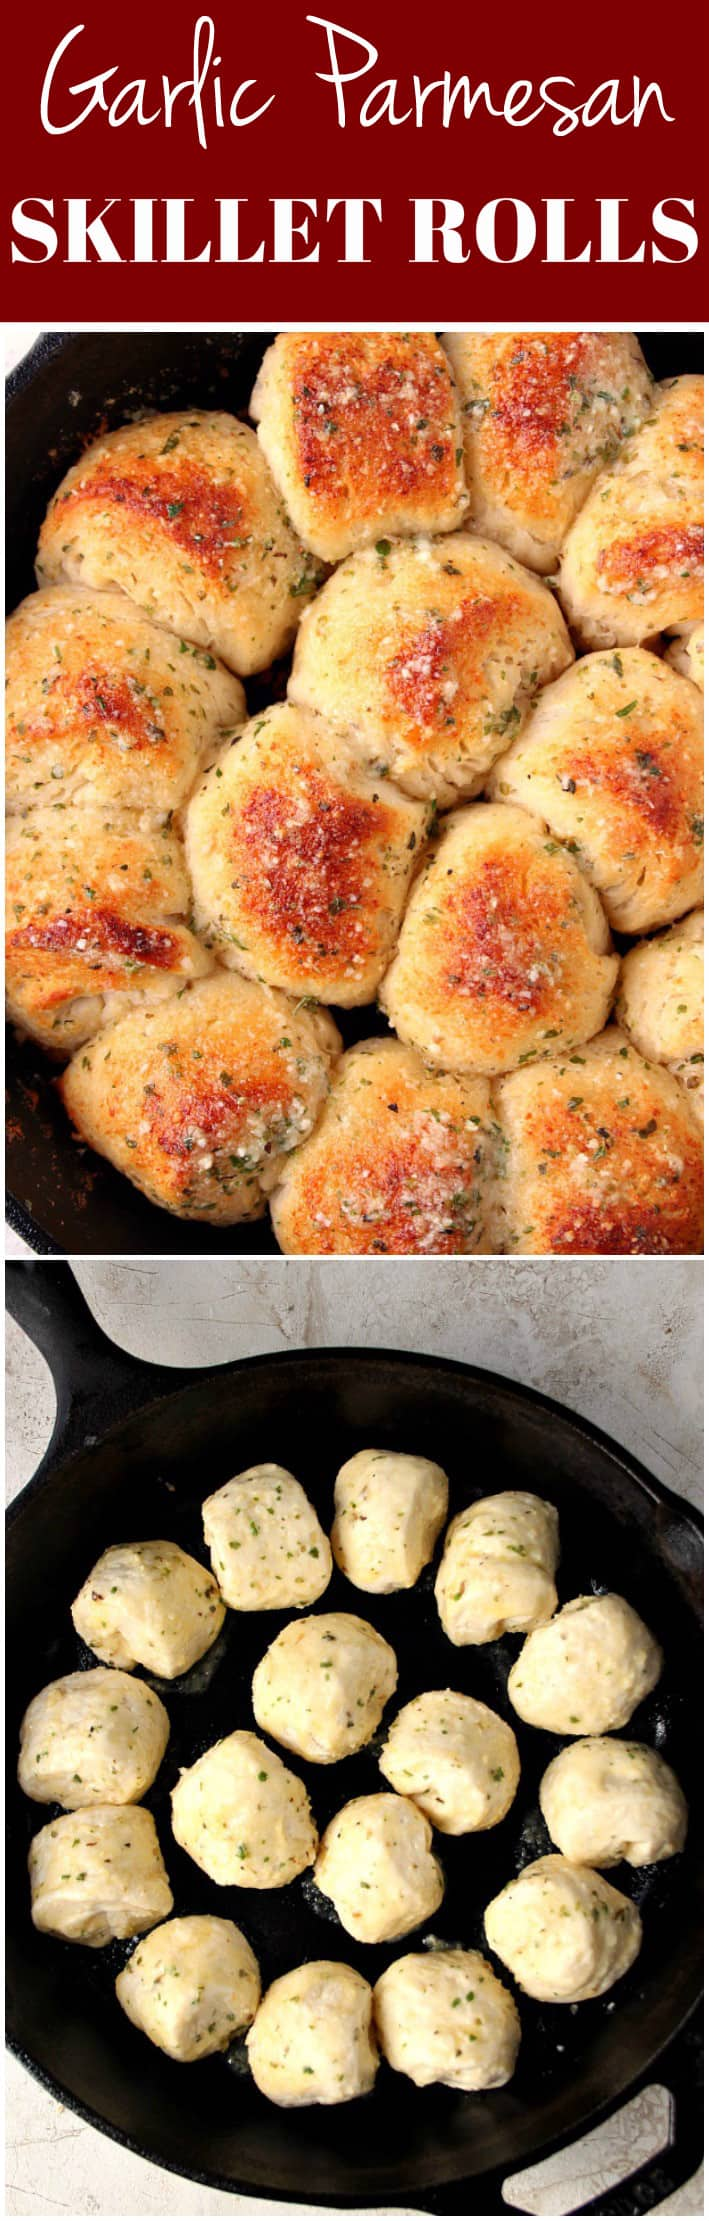 skillet rolls recipe long 1 Garlic Parmesan Skillet Rolls Recipe